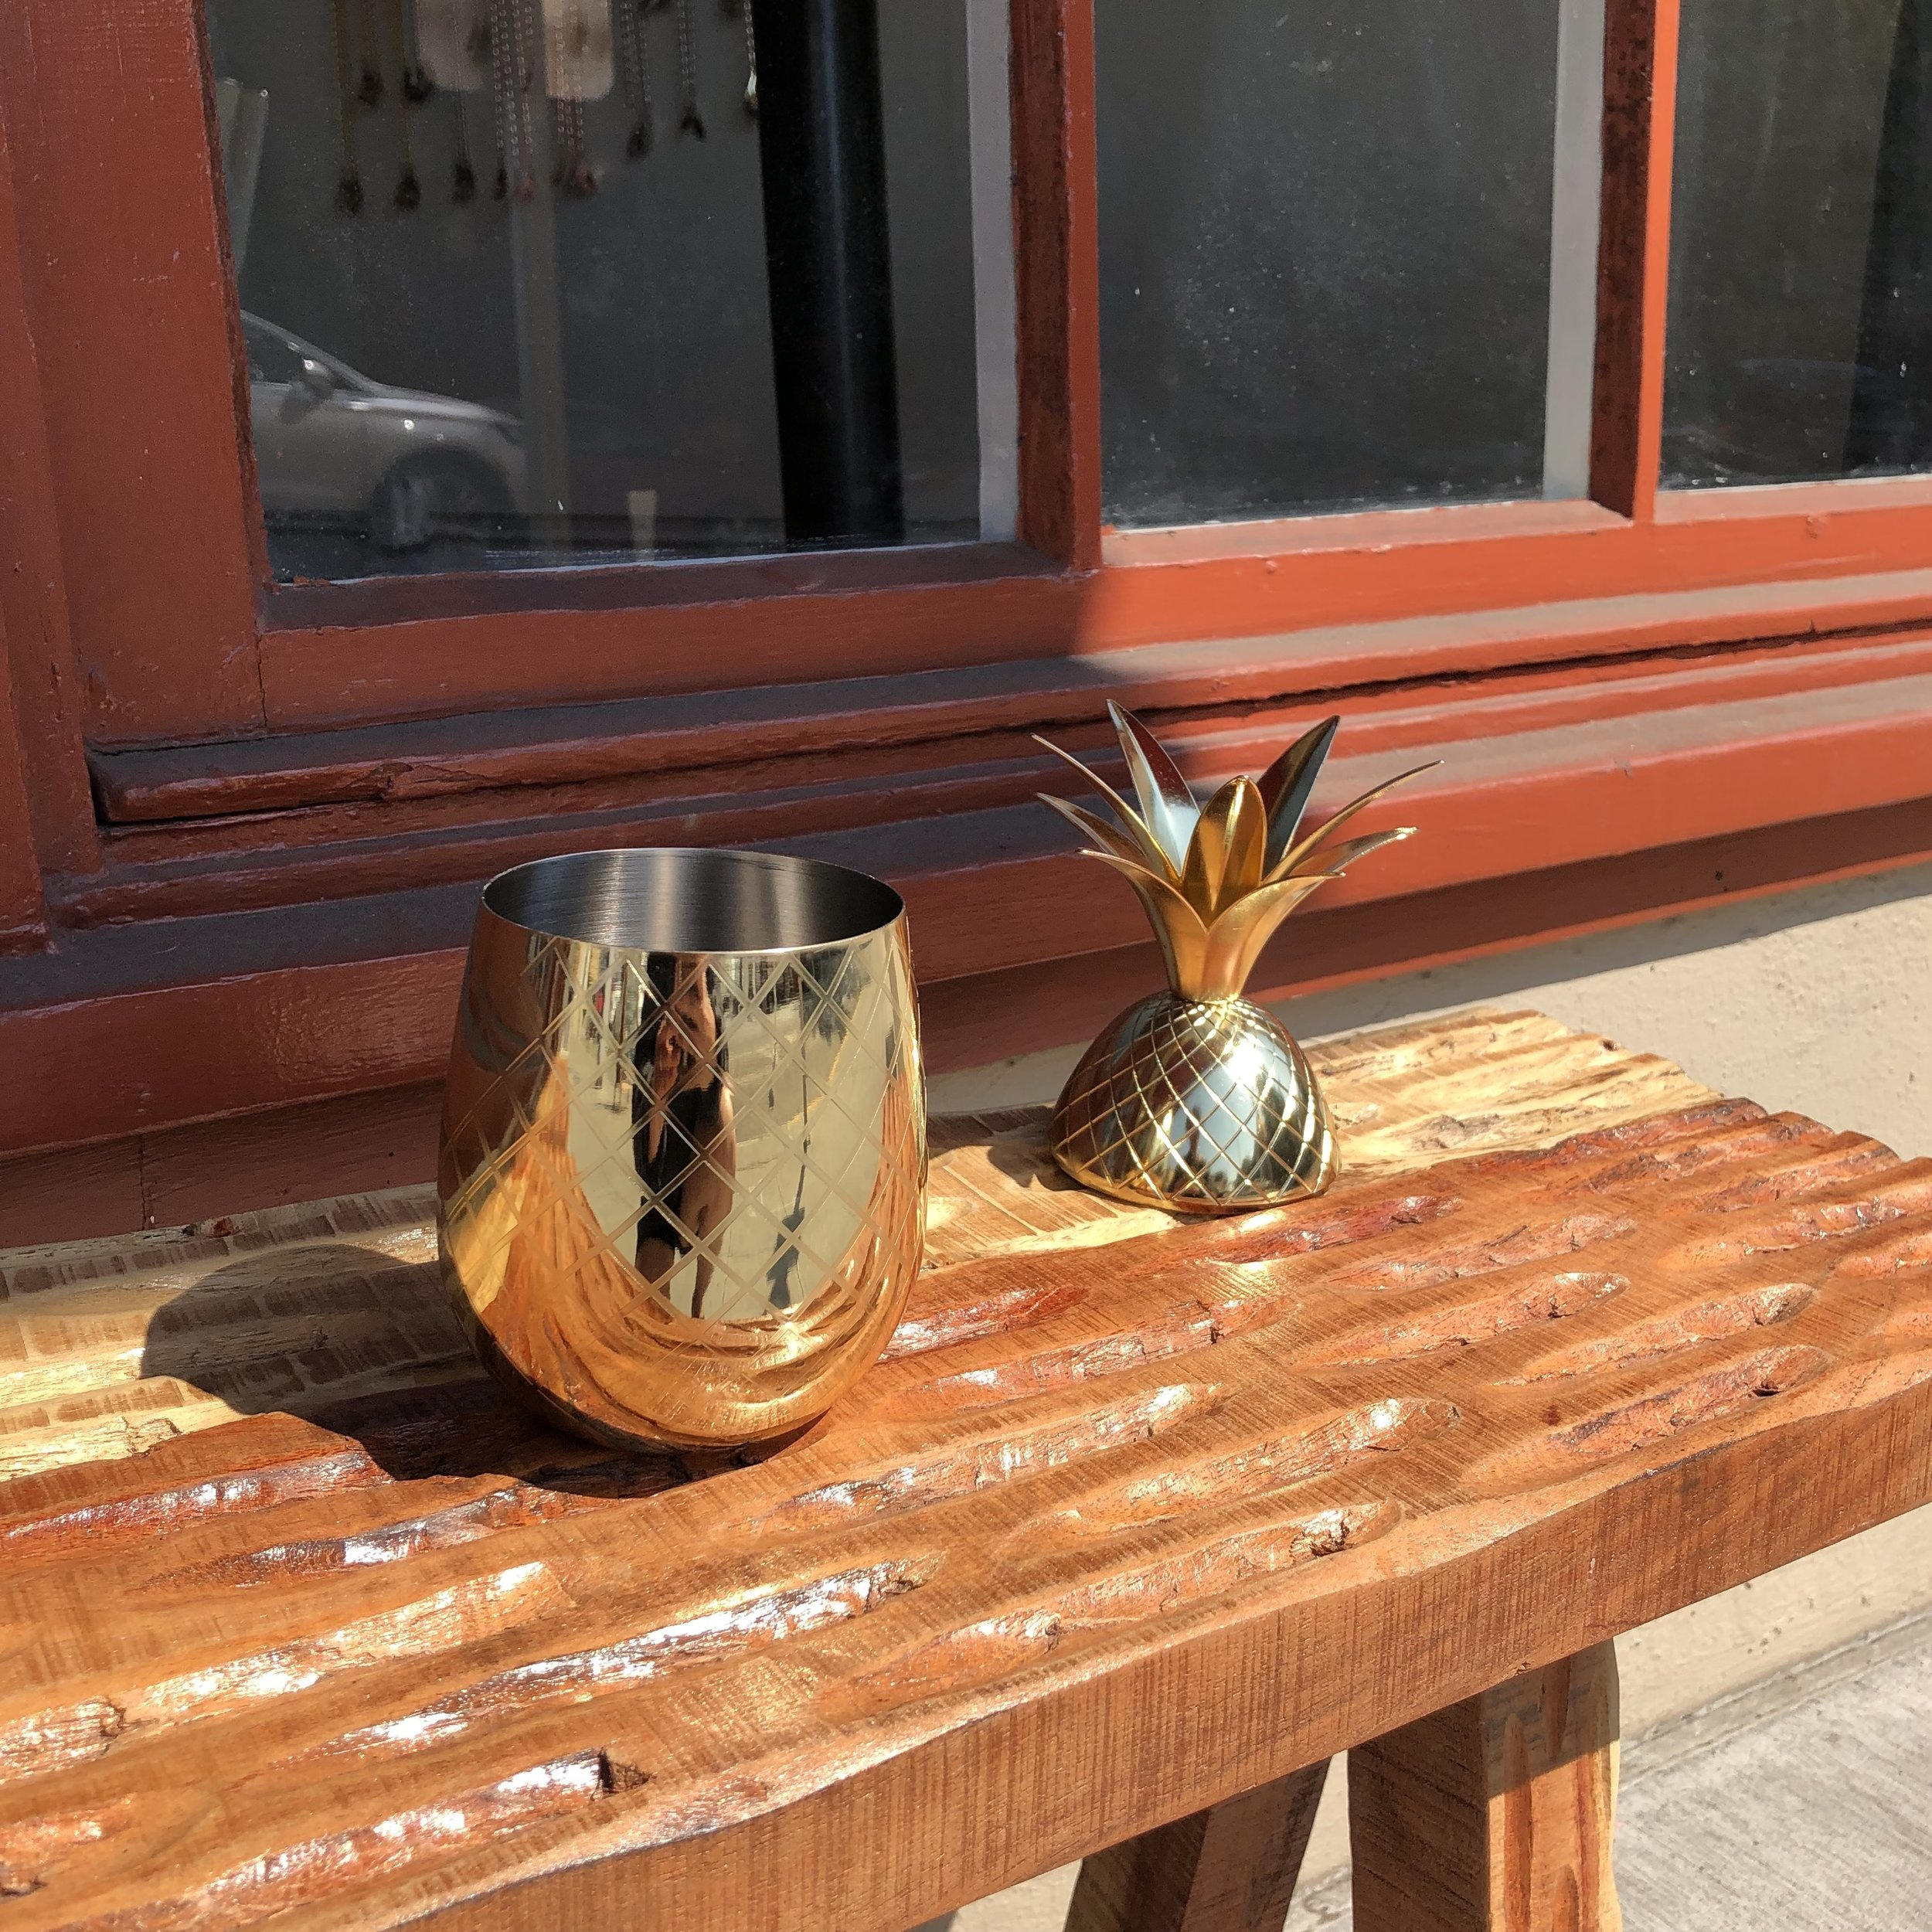 goblets, tiki mugs, and cups